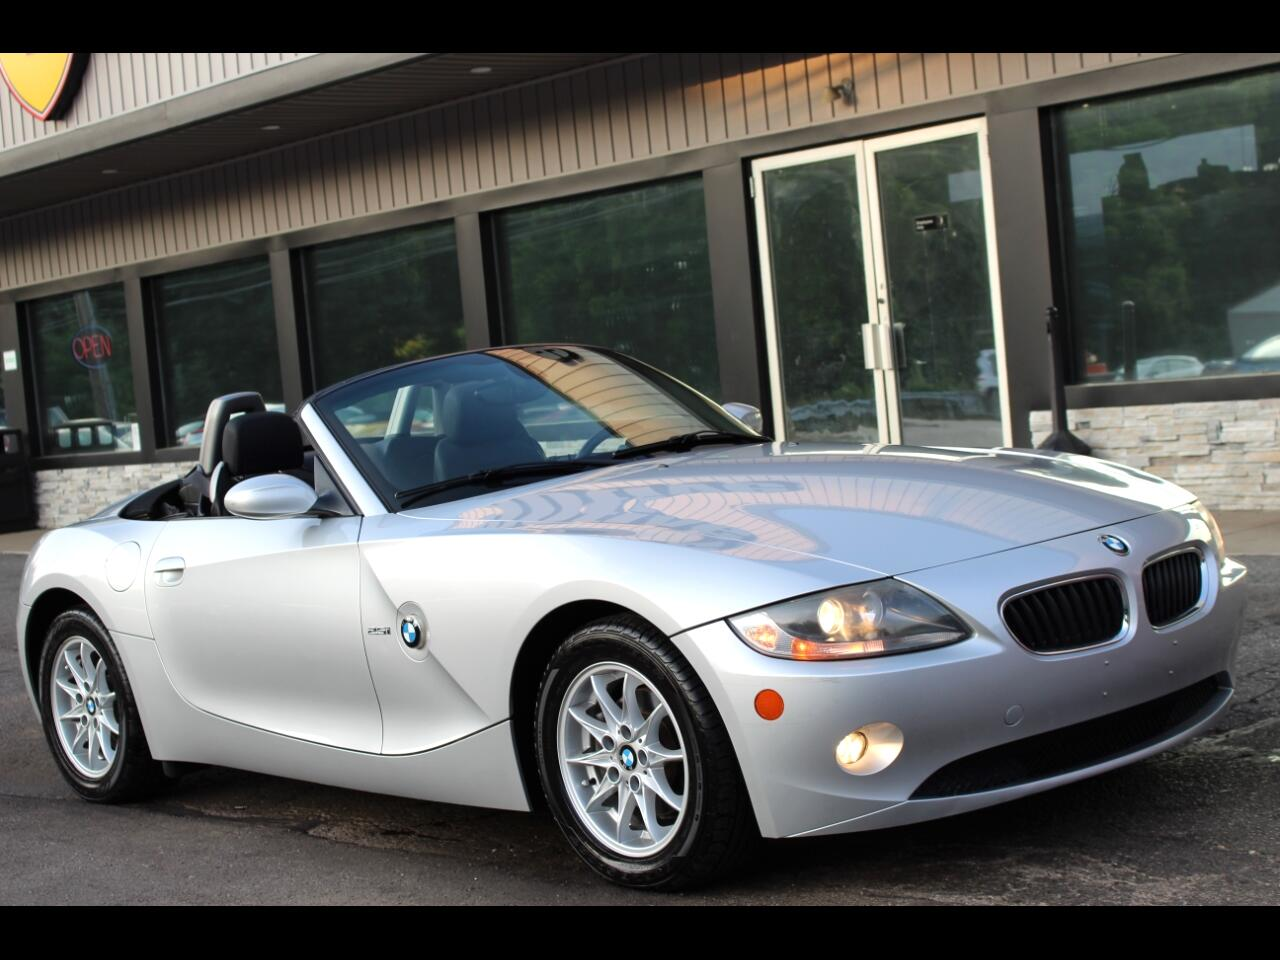 BMW Z4 2dr Roadster 2.5i 2005